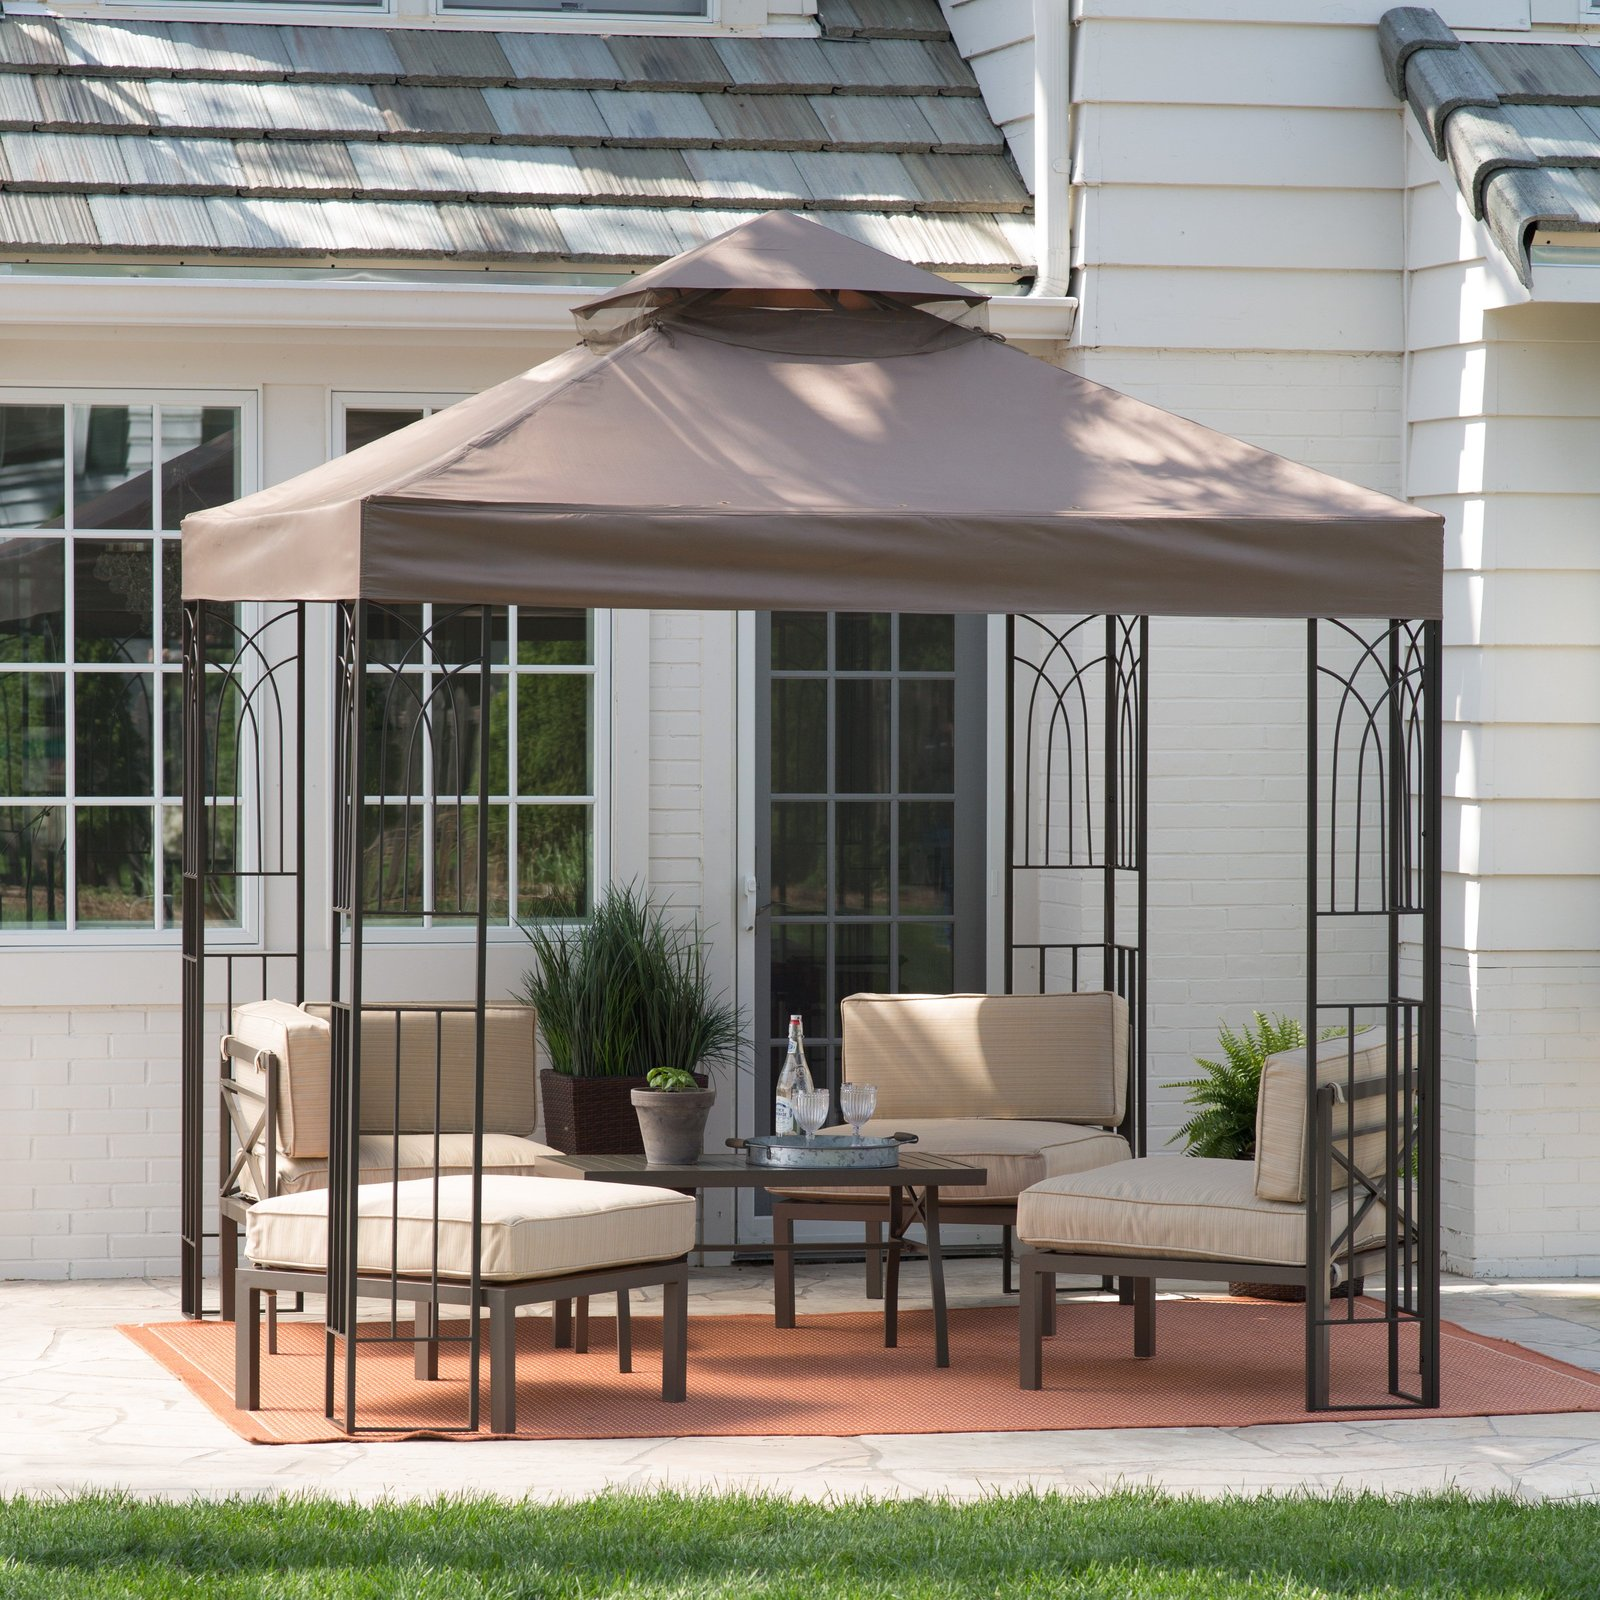 Gazebo canopy patio sun shade outdoor sun shade furniture for Outdoor furniture gazebo